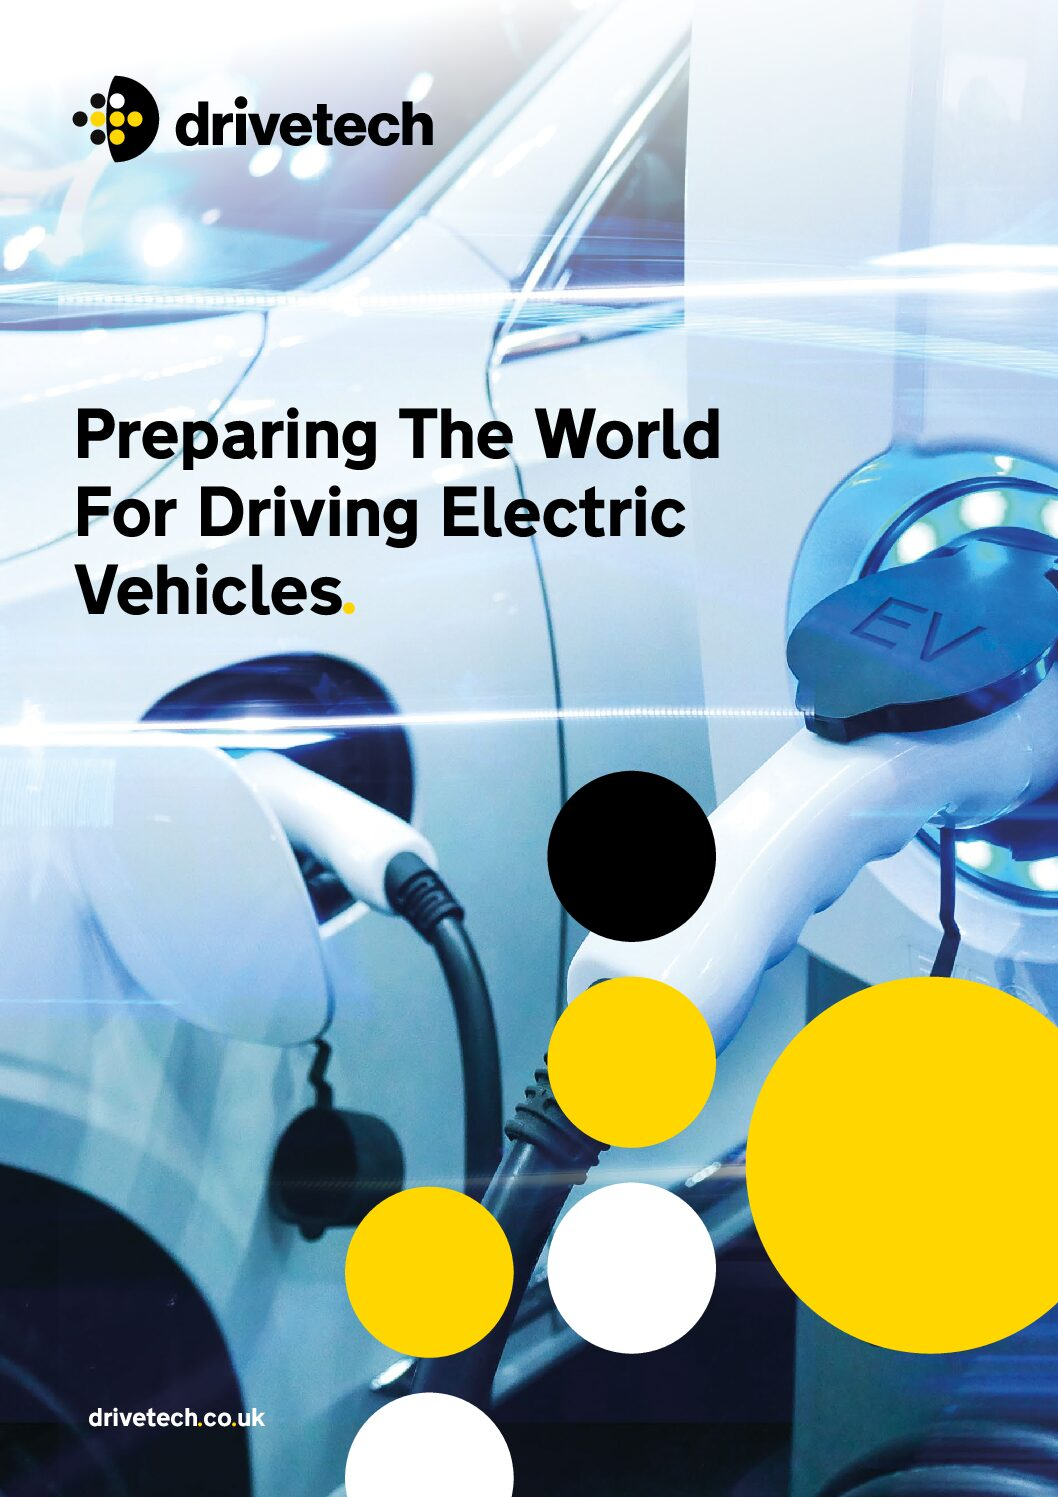 Preparing The World For Driving Electric Vehicles